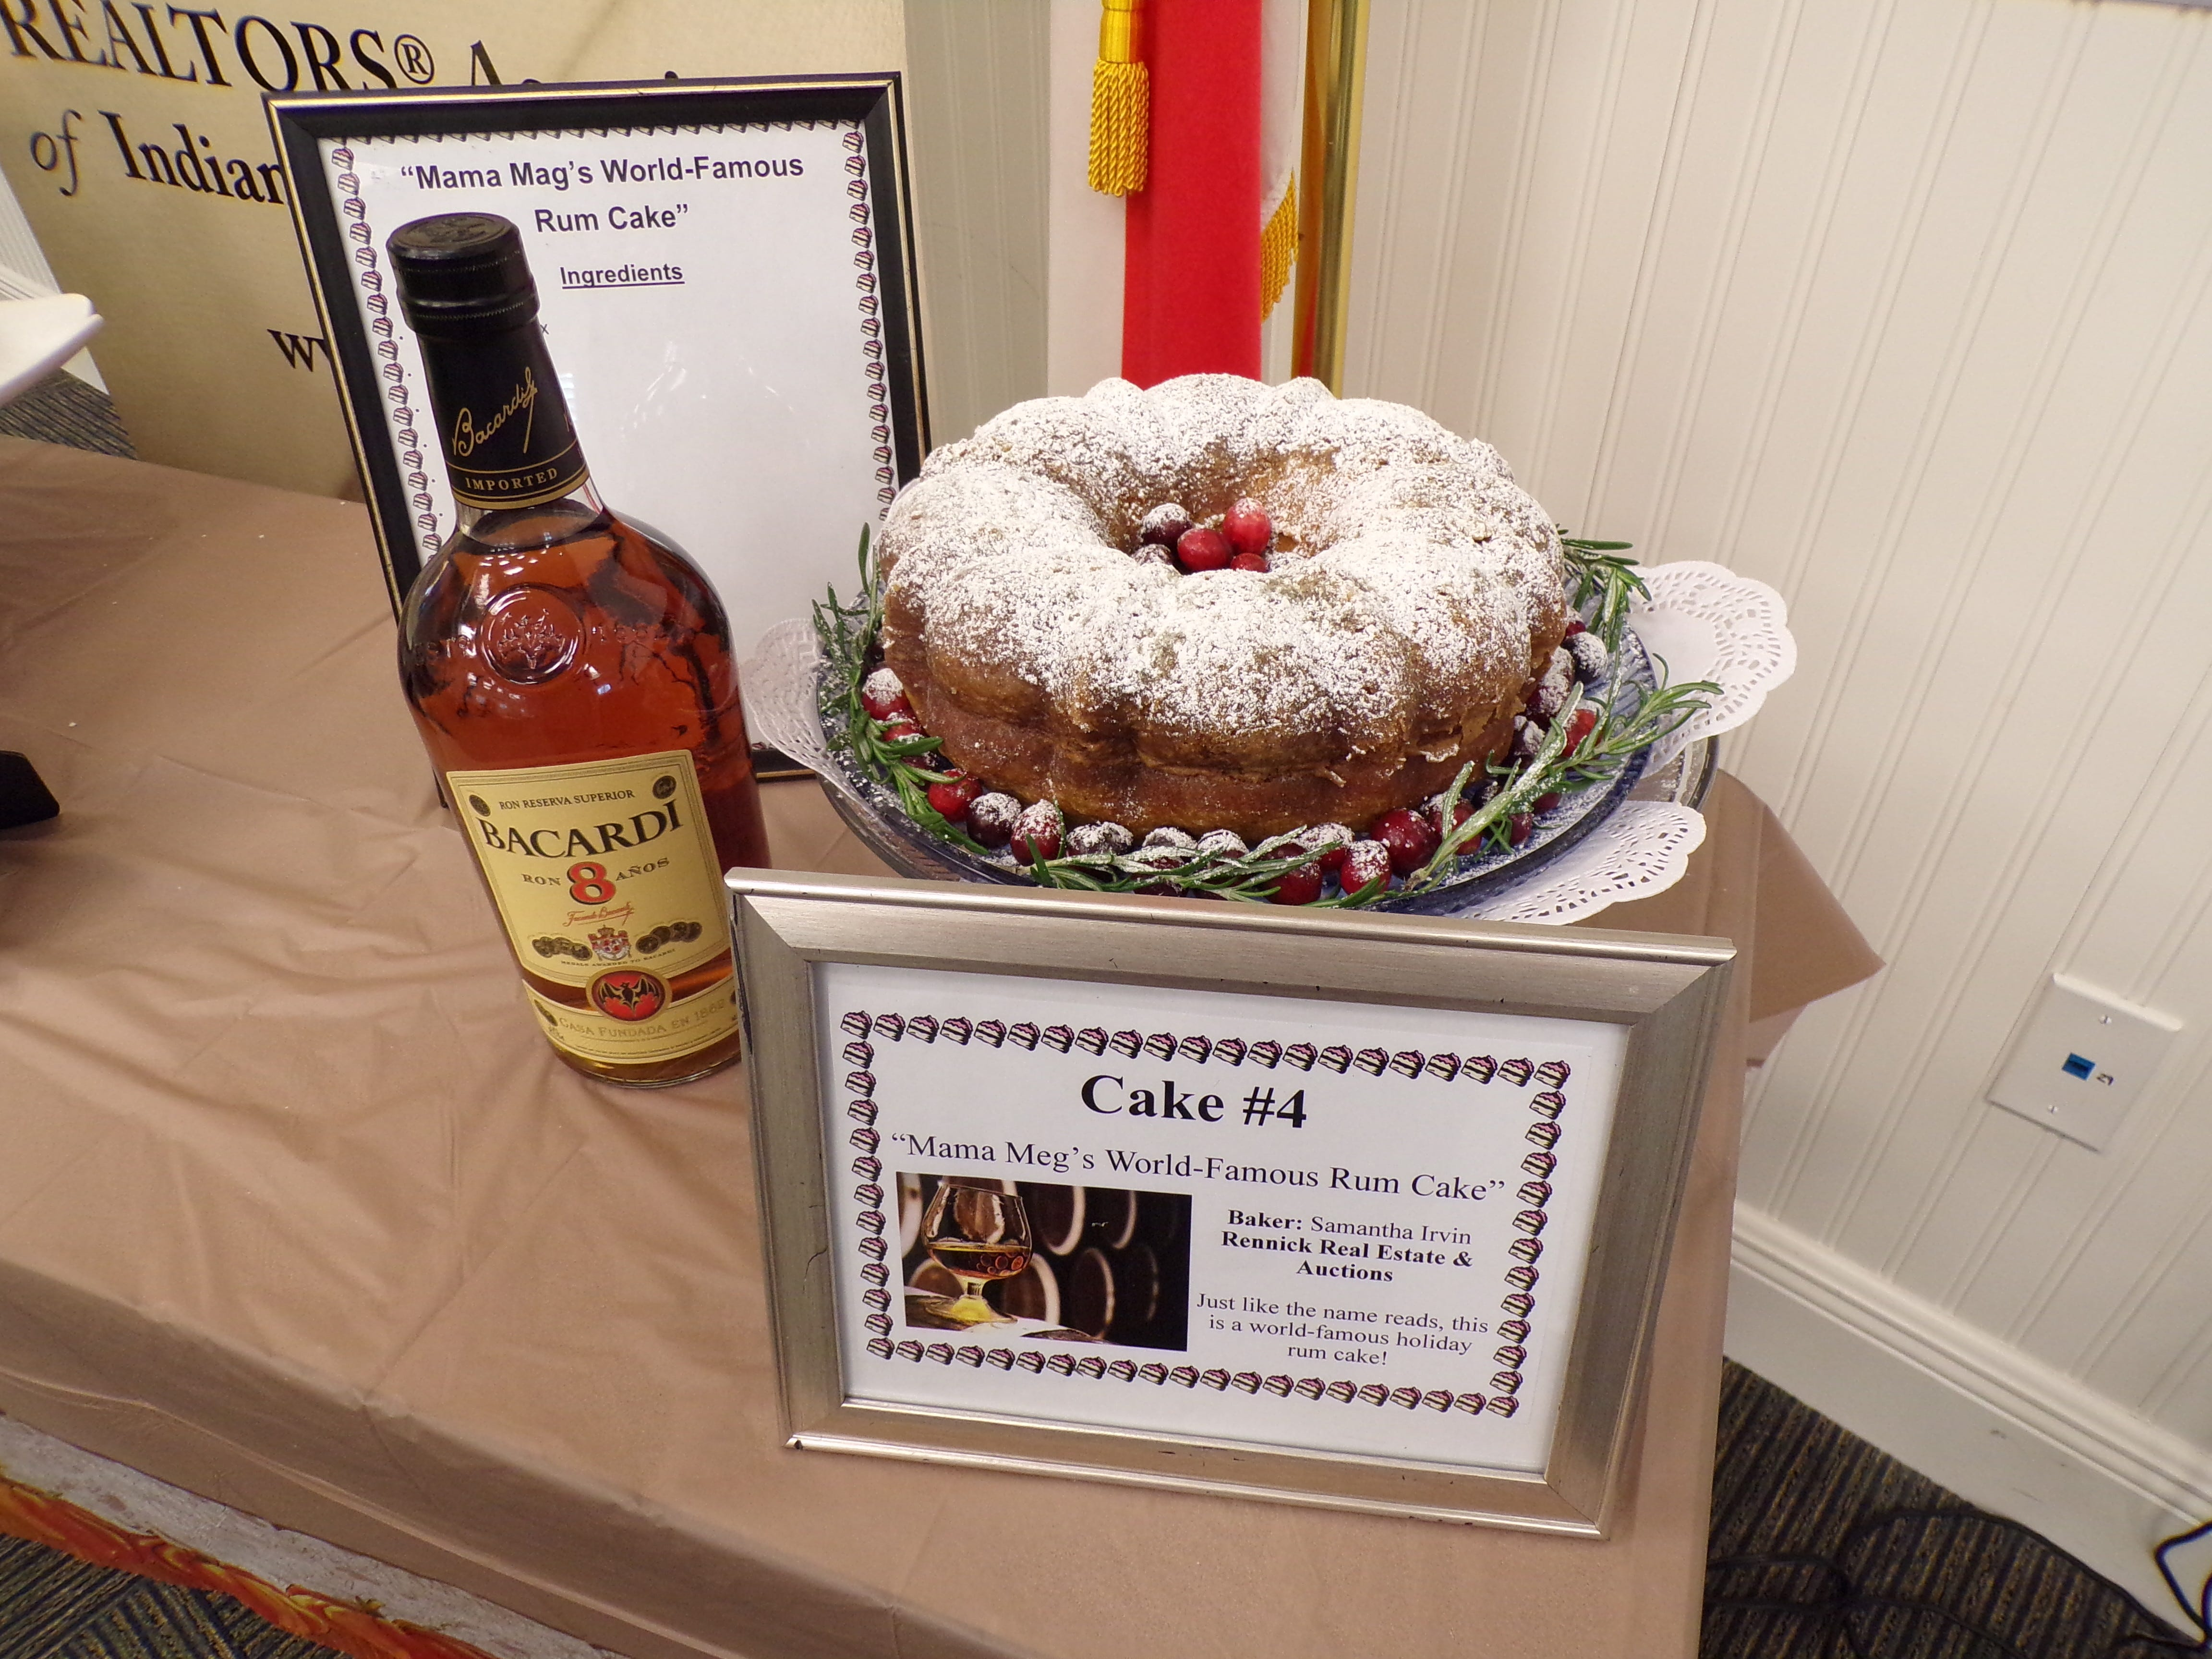 Best Tasting: Mama Meg's World-Famous Rum Cake, prepared by Samantha Irvin with Rennick Real Estate & Auctions.